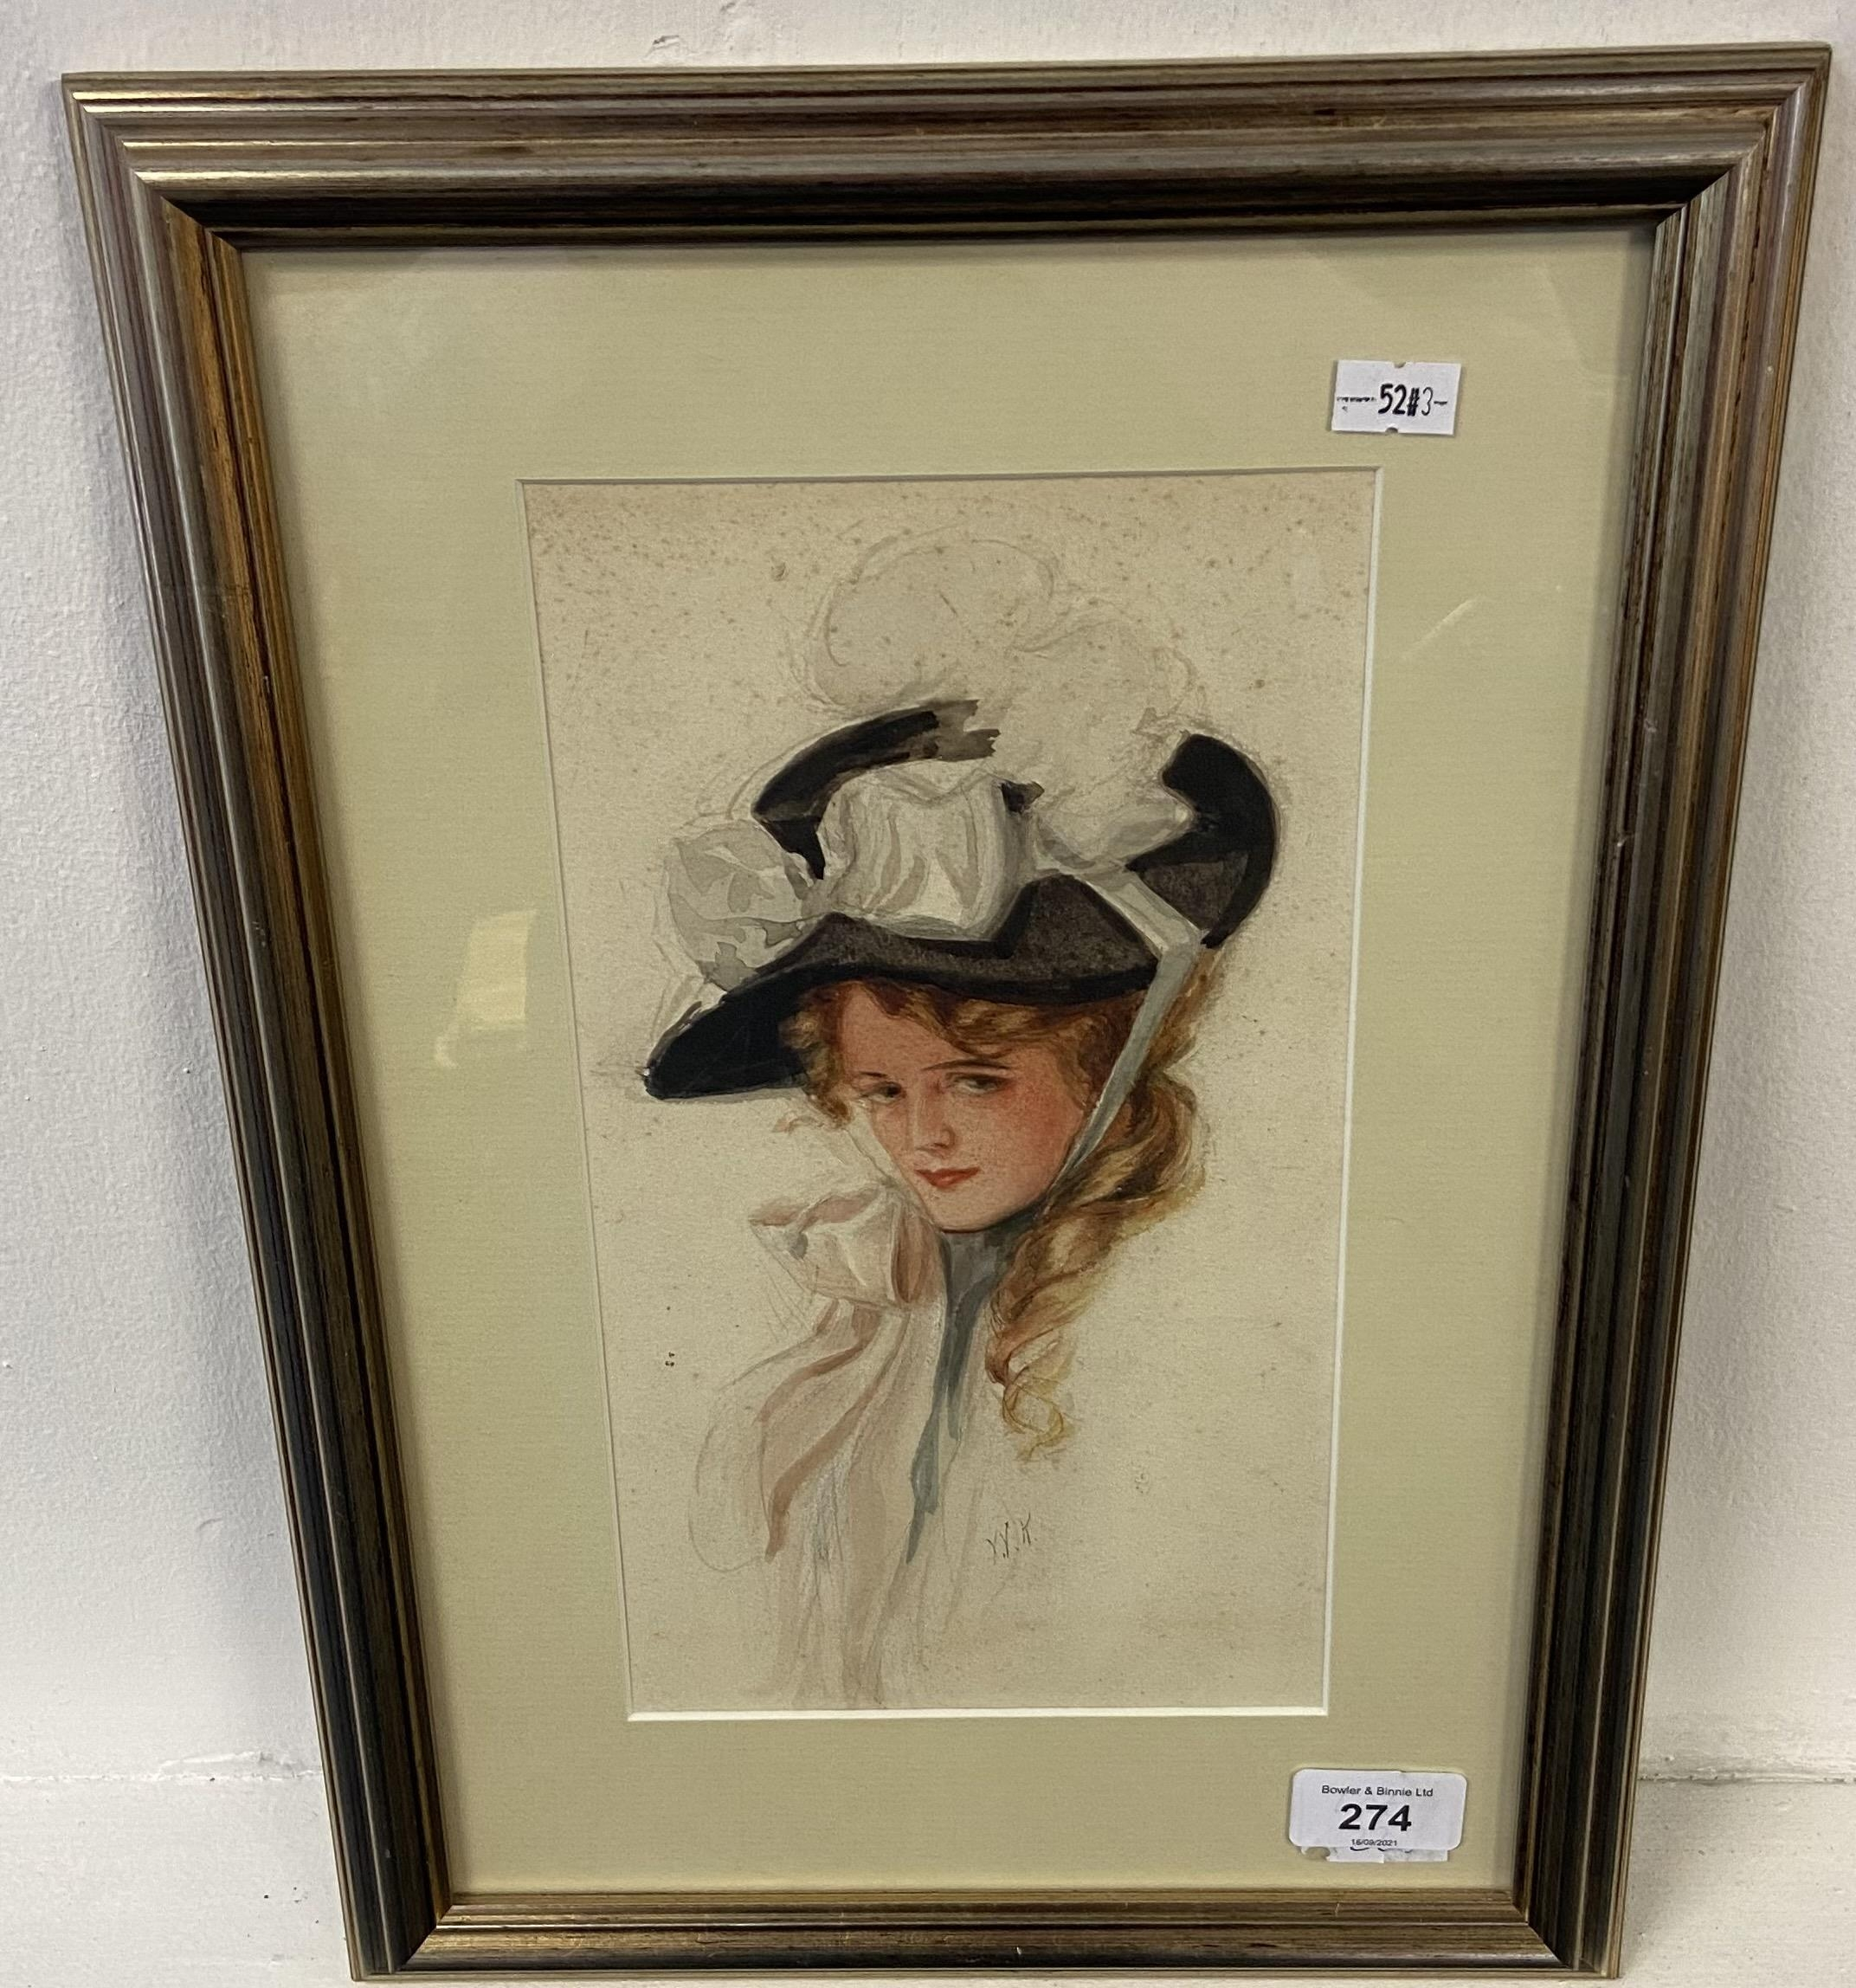 An original watercolour depicting a lady portrait, c1920's and signed W.K.